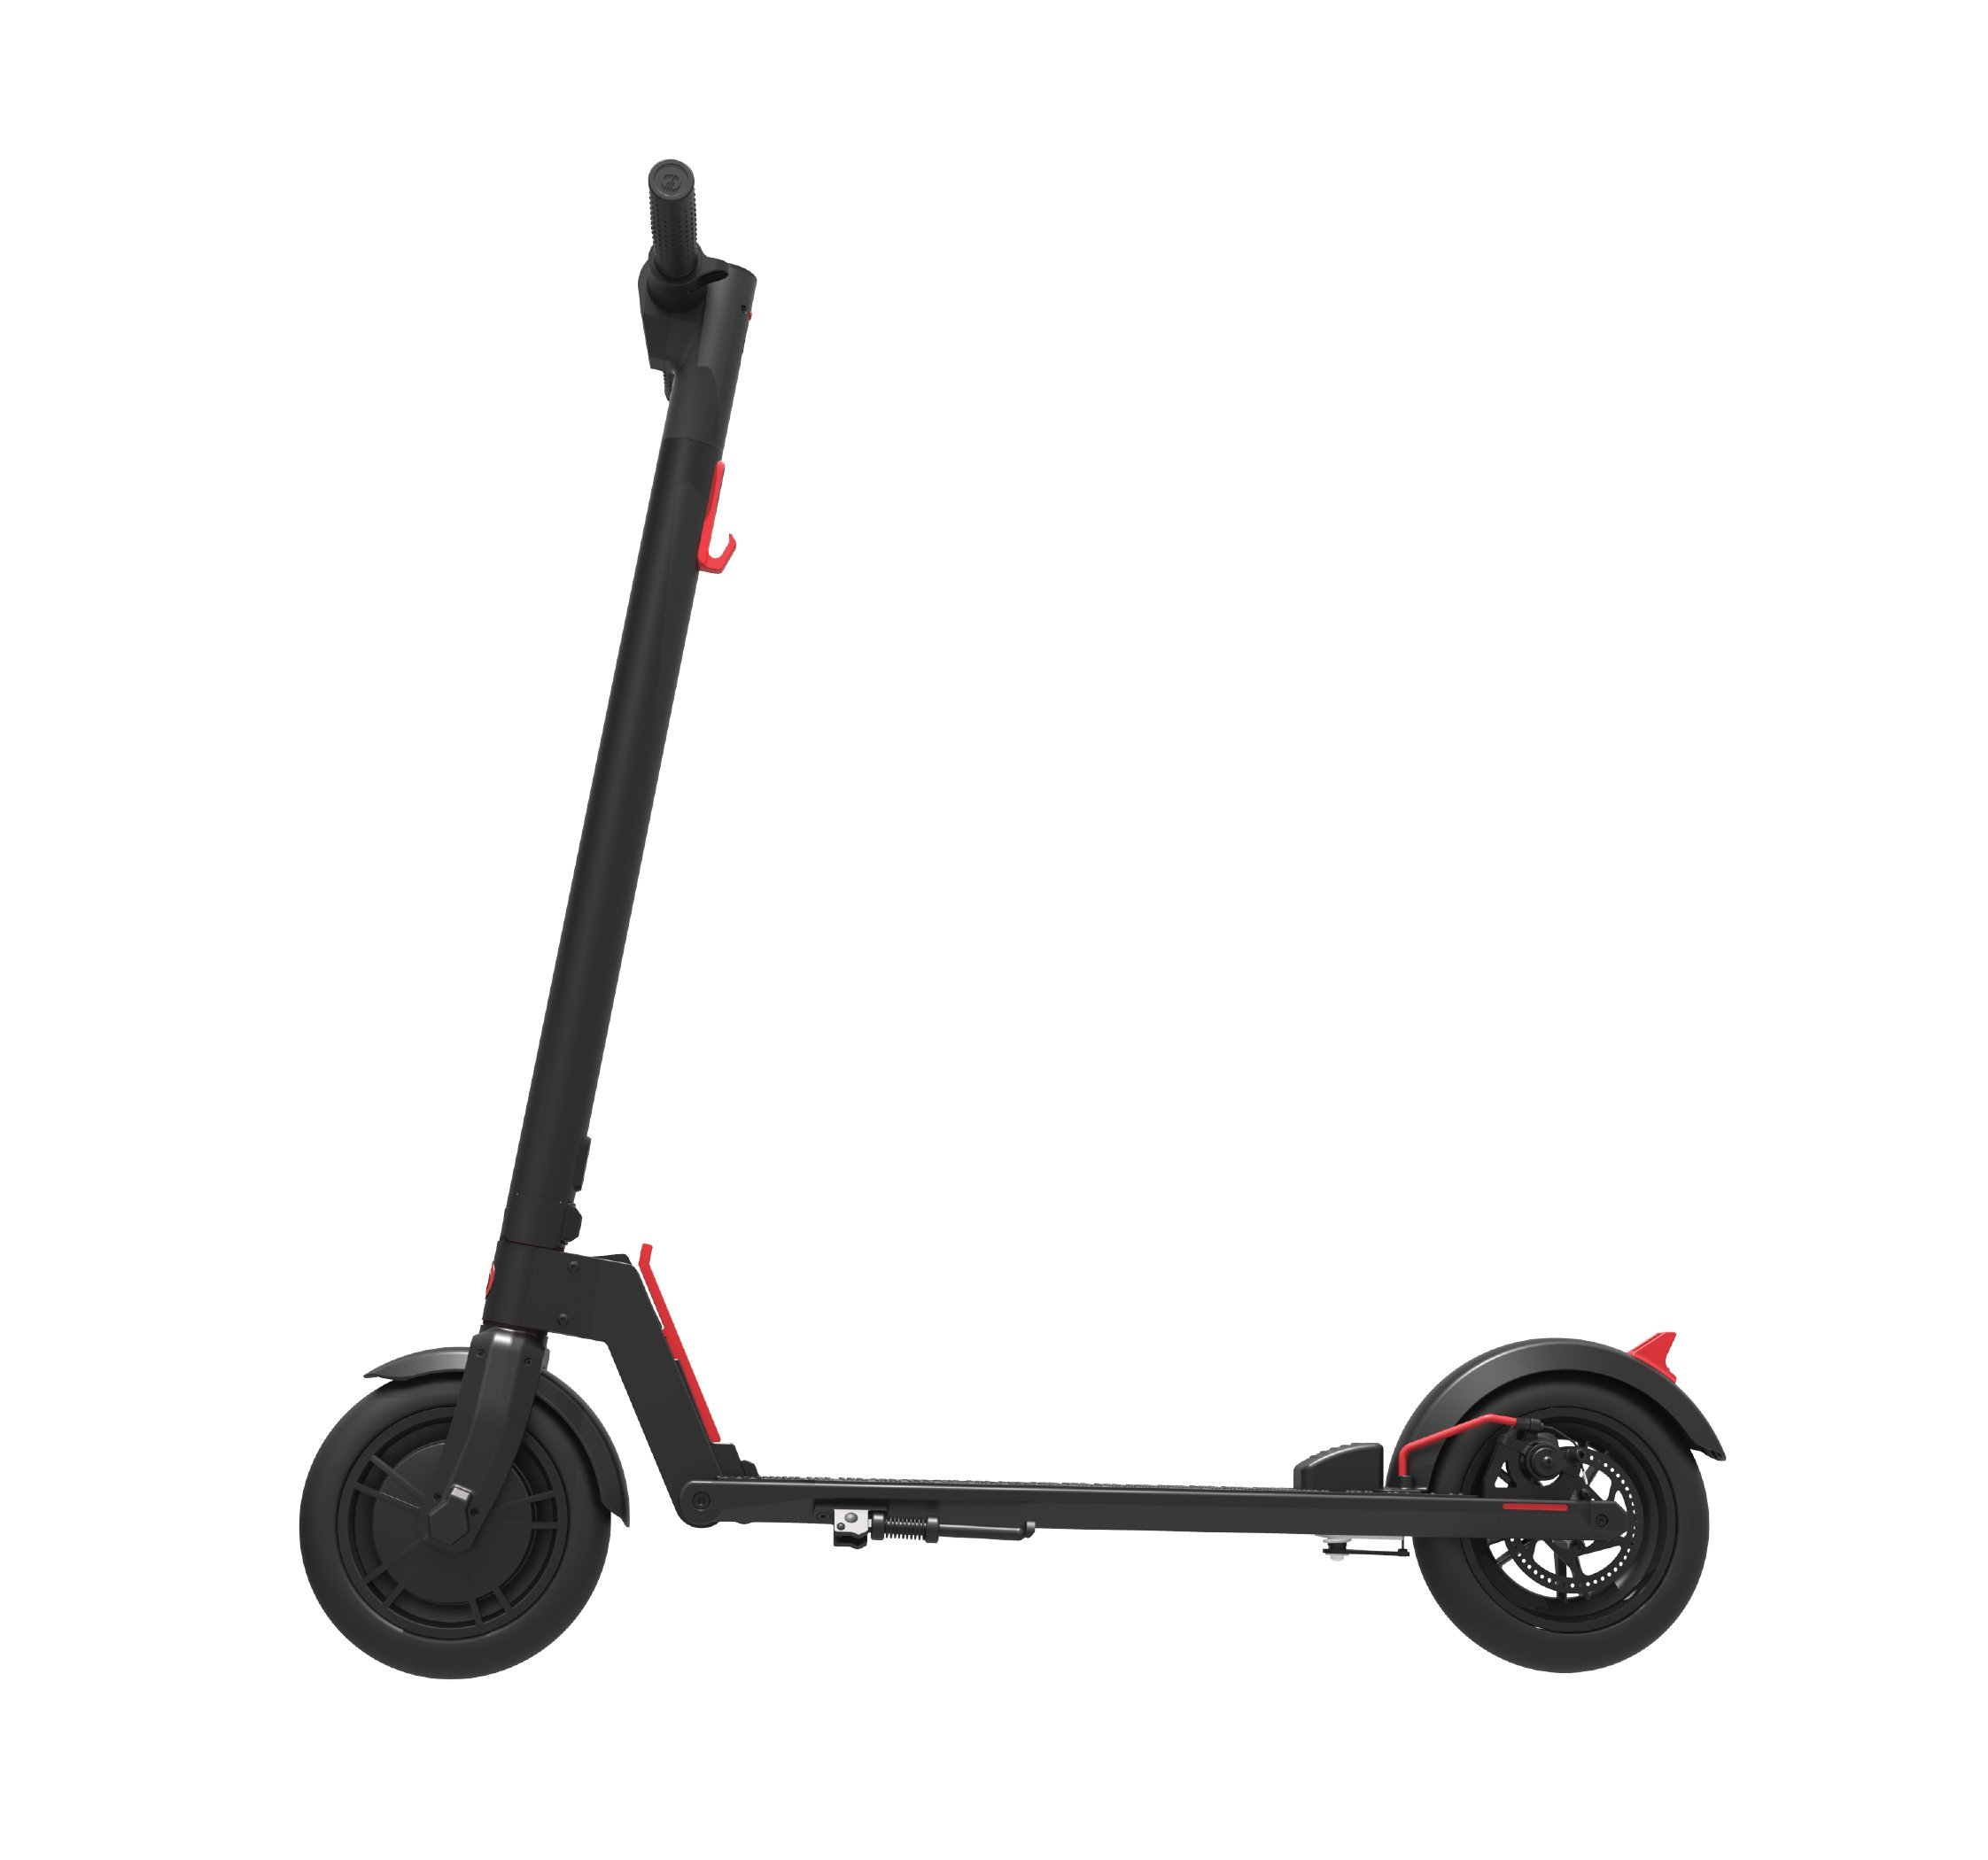 GOTRAX GXL Commuting Electric Scooter - 8.5'' Air Filled Tires - 15.5MPH & up to 12mile Range (Black)